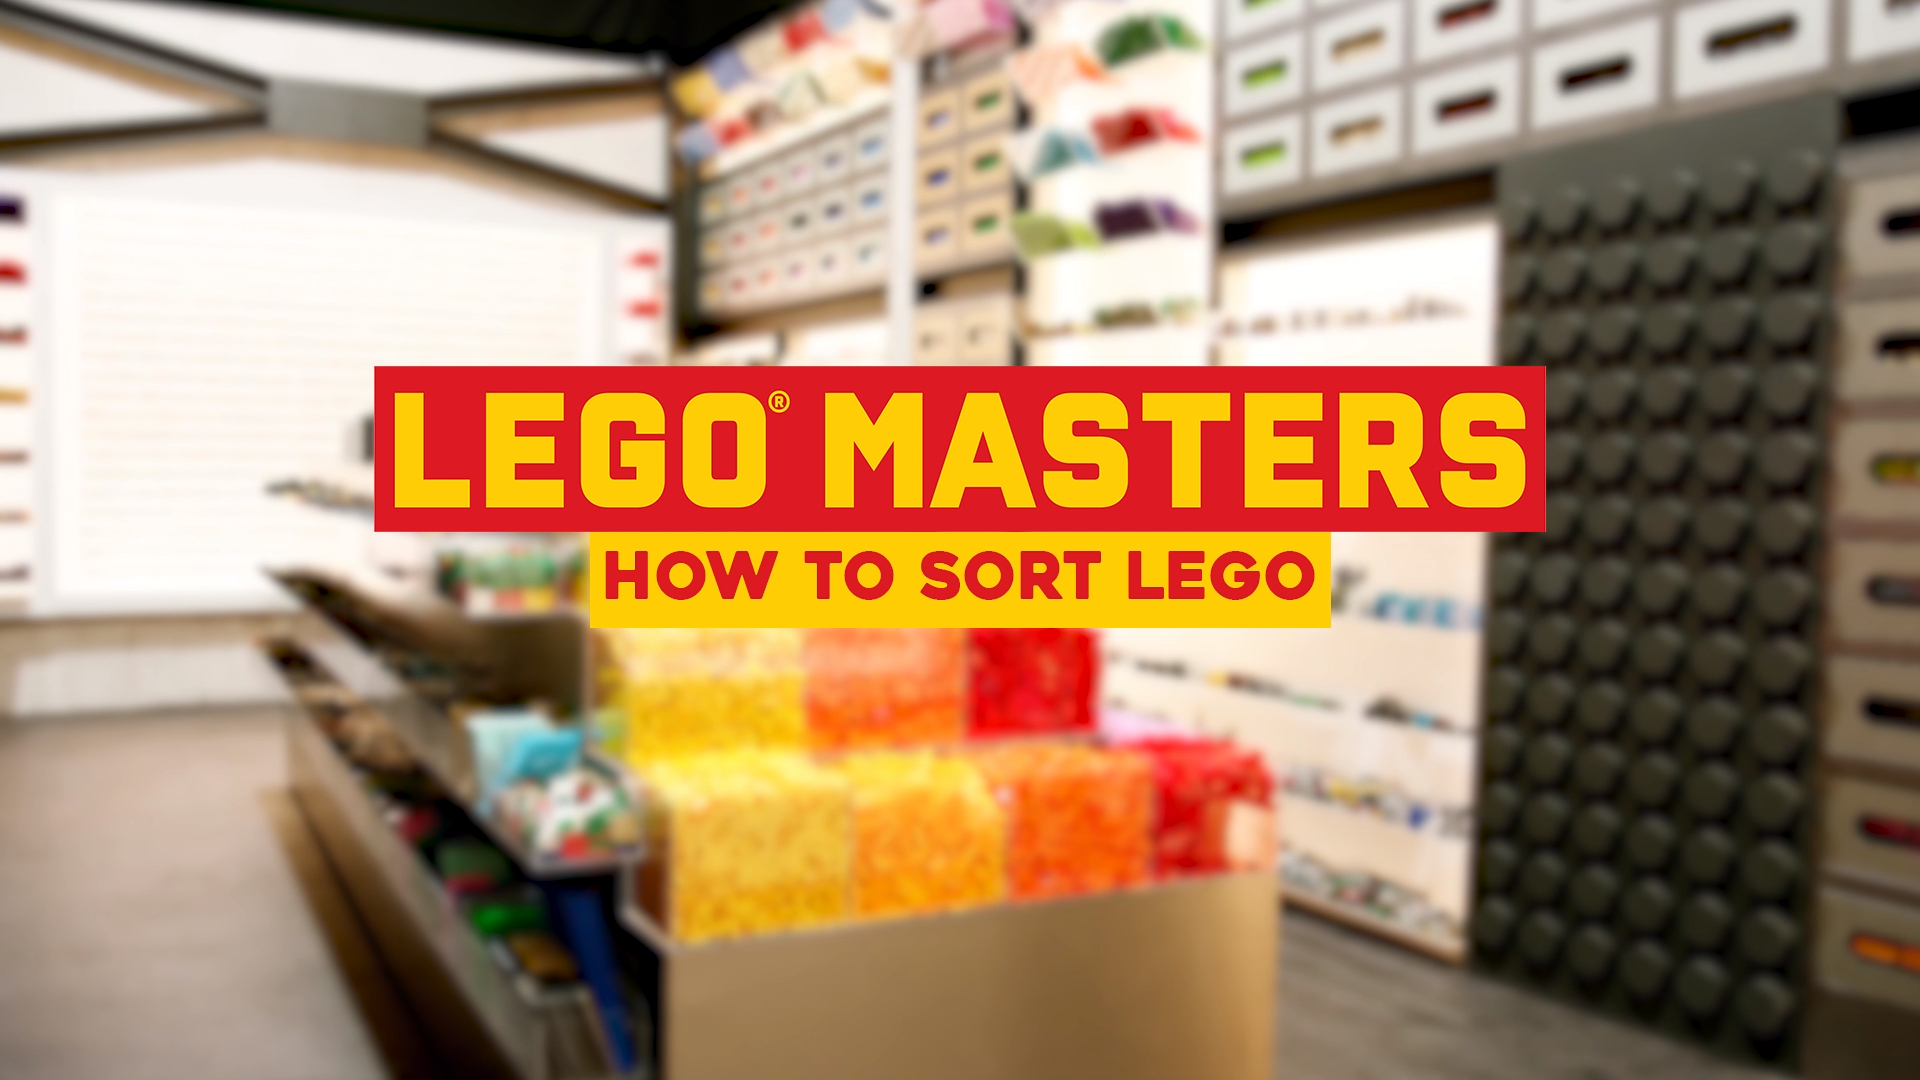 Tips, Tricks and Hacks: How to sort LEGO